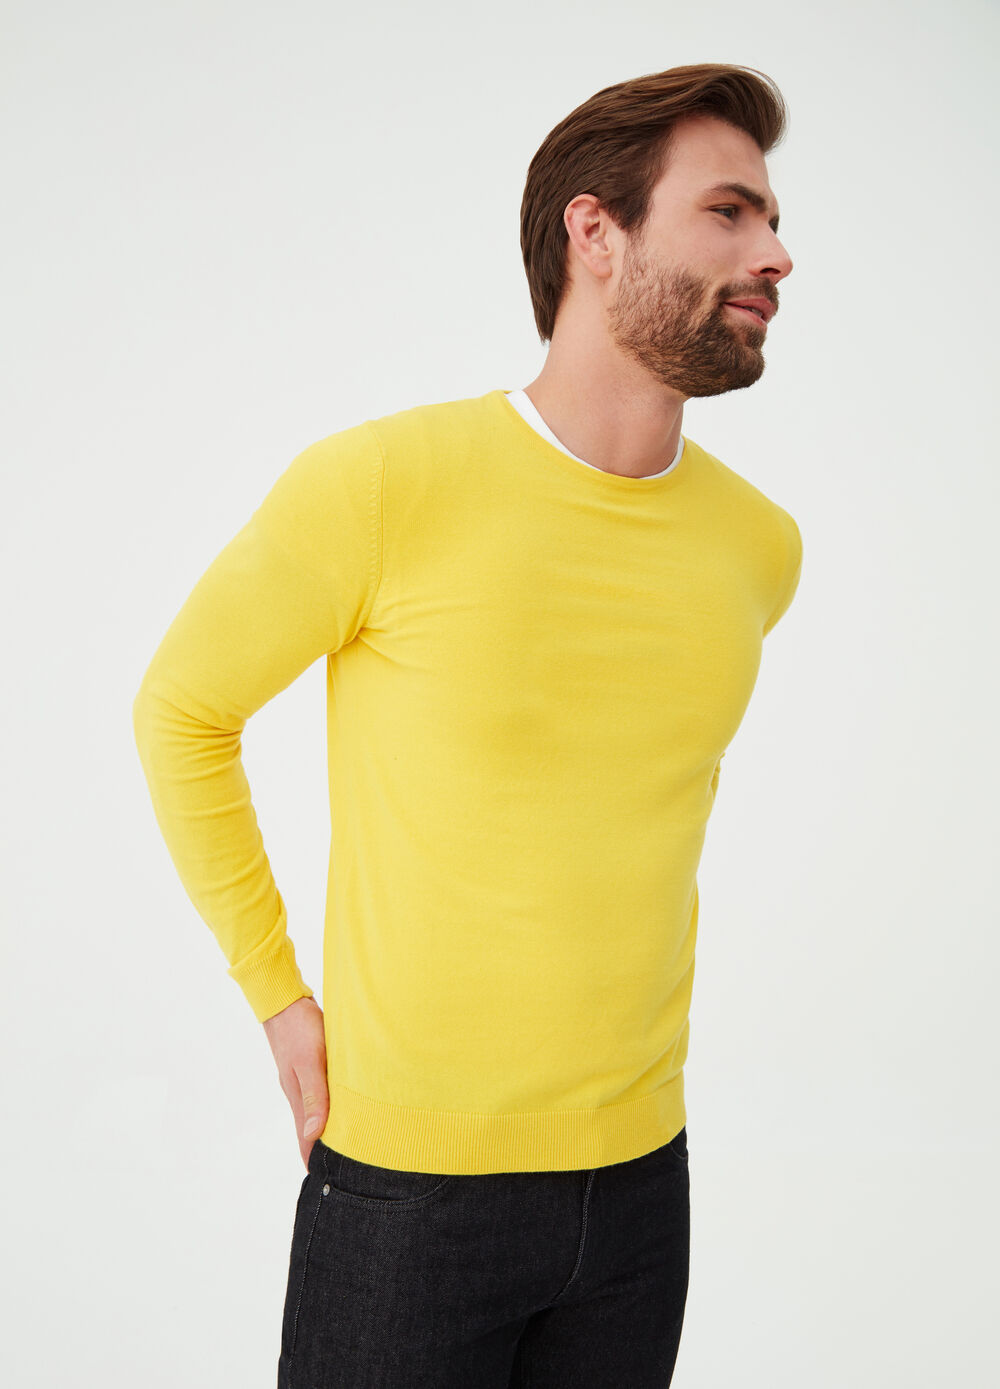 Cotton blend pullover with round neck